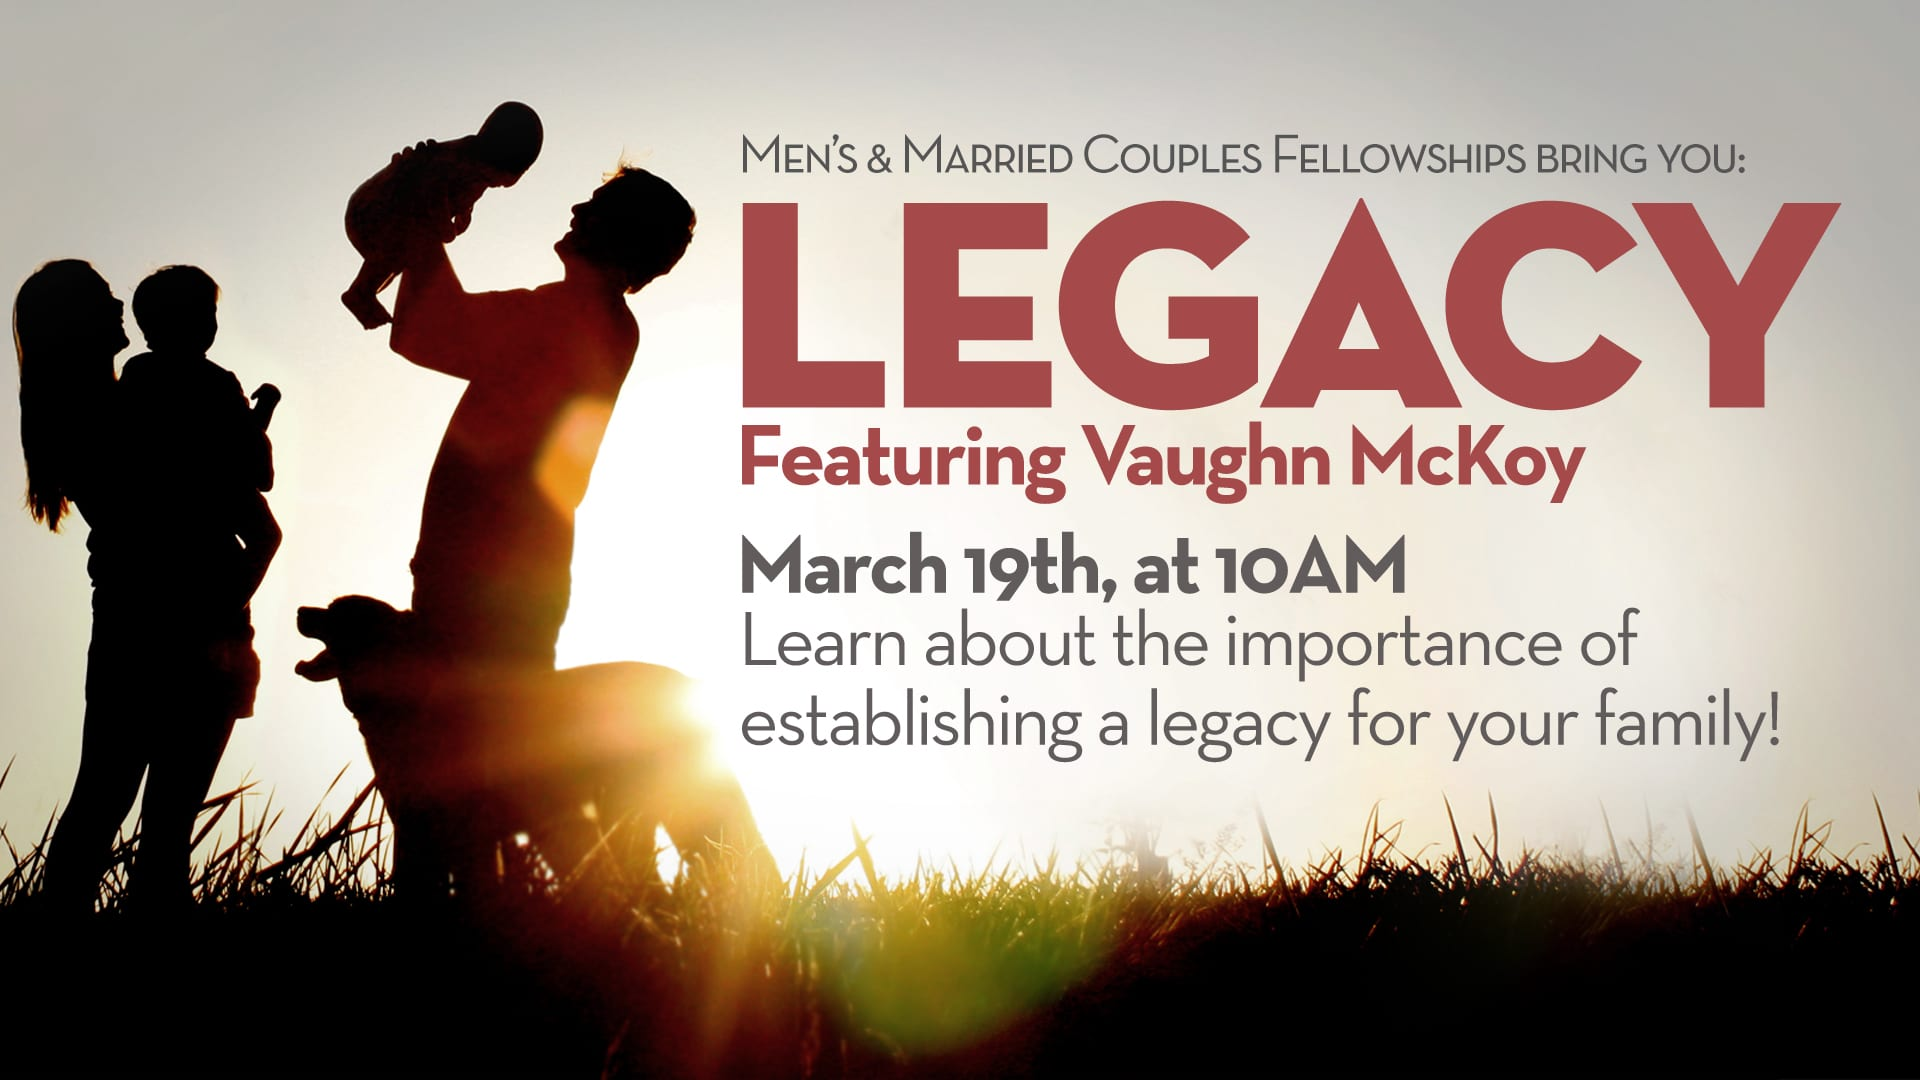 Legacy featuring Vaughn McKoy